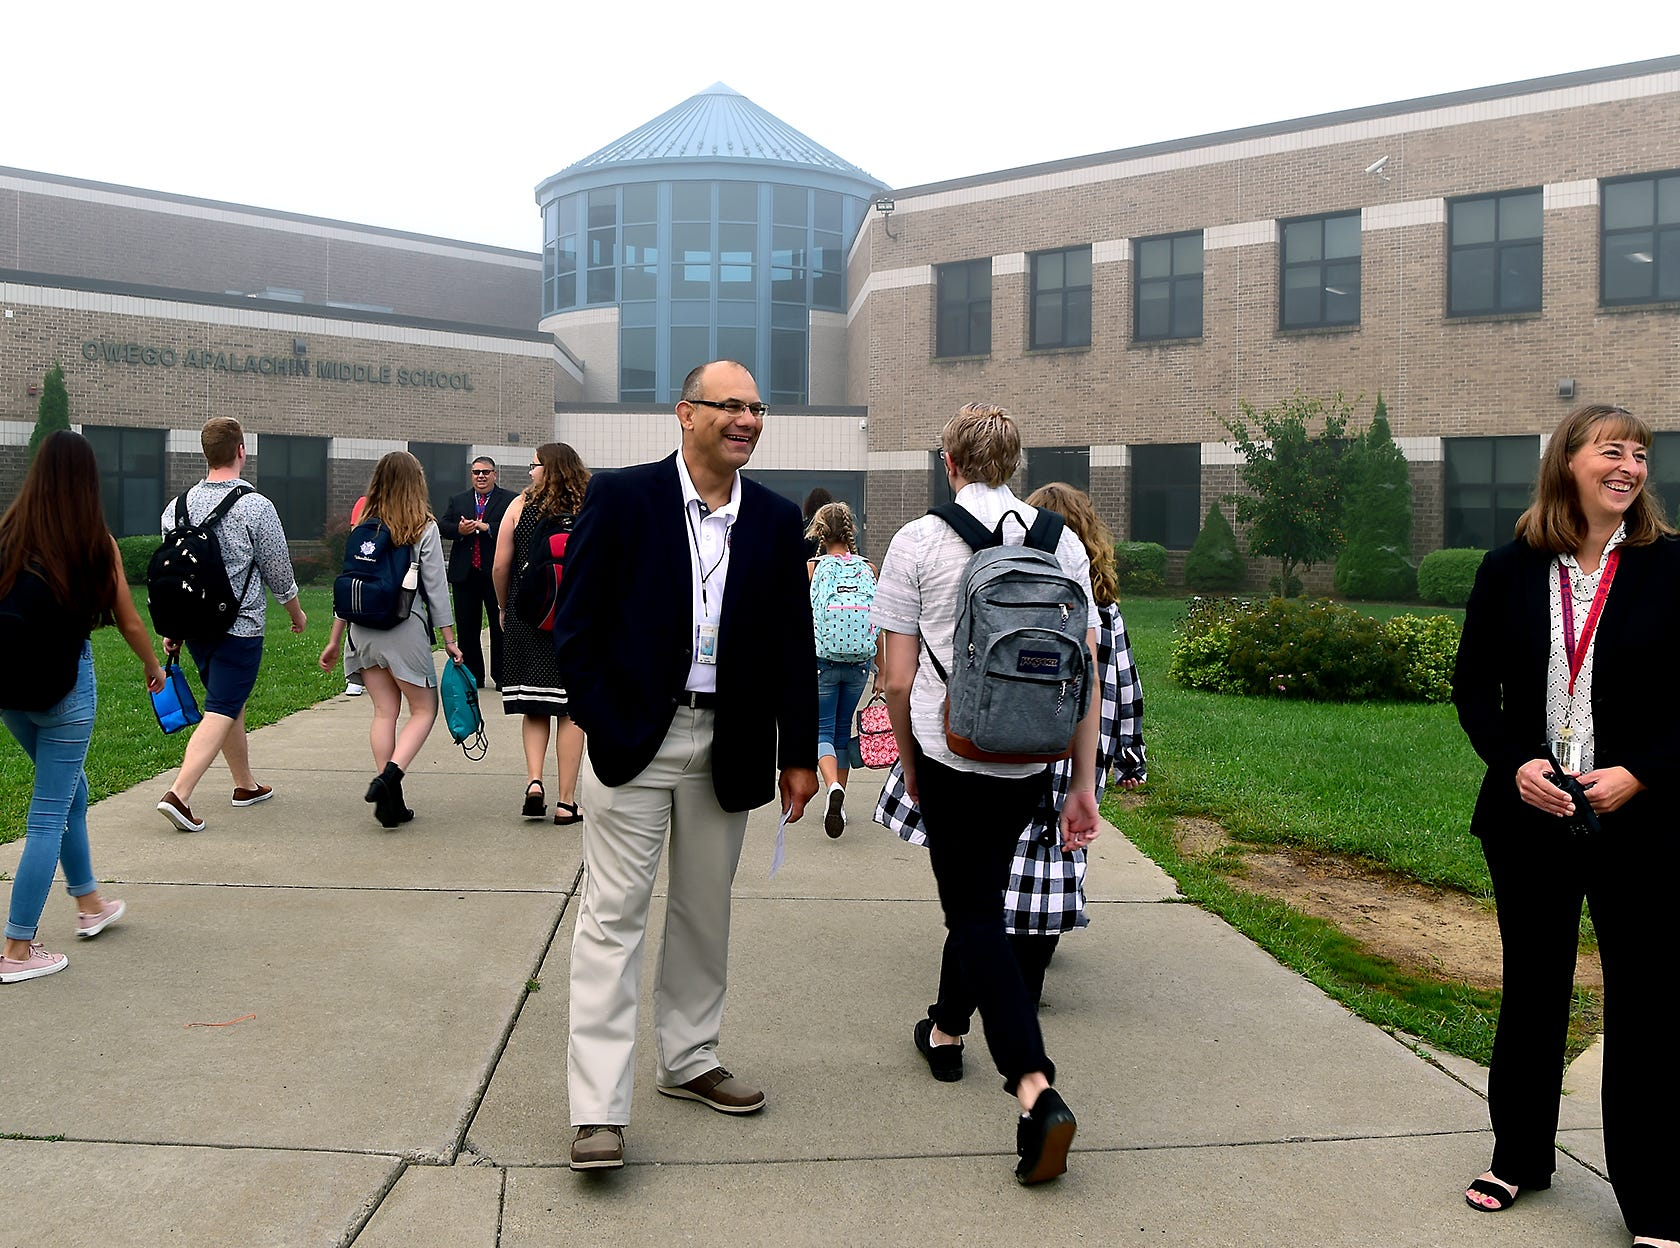 Owego Apalachin Middle School Principal and Assistant Principal, Tom Beatty and Emily Crawford, greet students during the first day of classes at Owego Apalachin Middle School and Owego Free Academy, Wednesday, September 5, 2018.